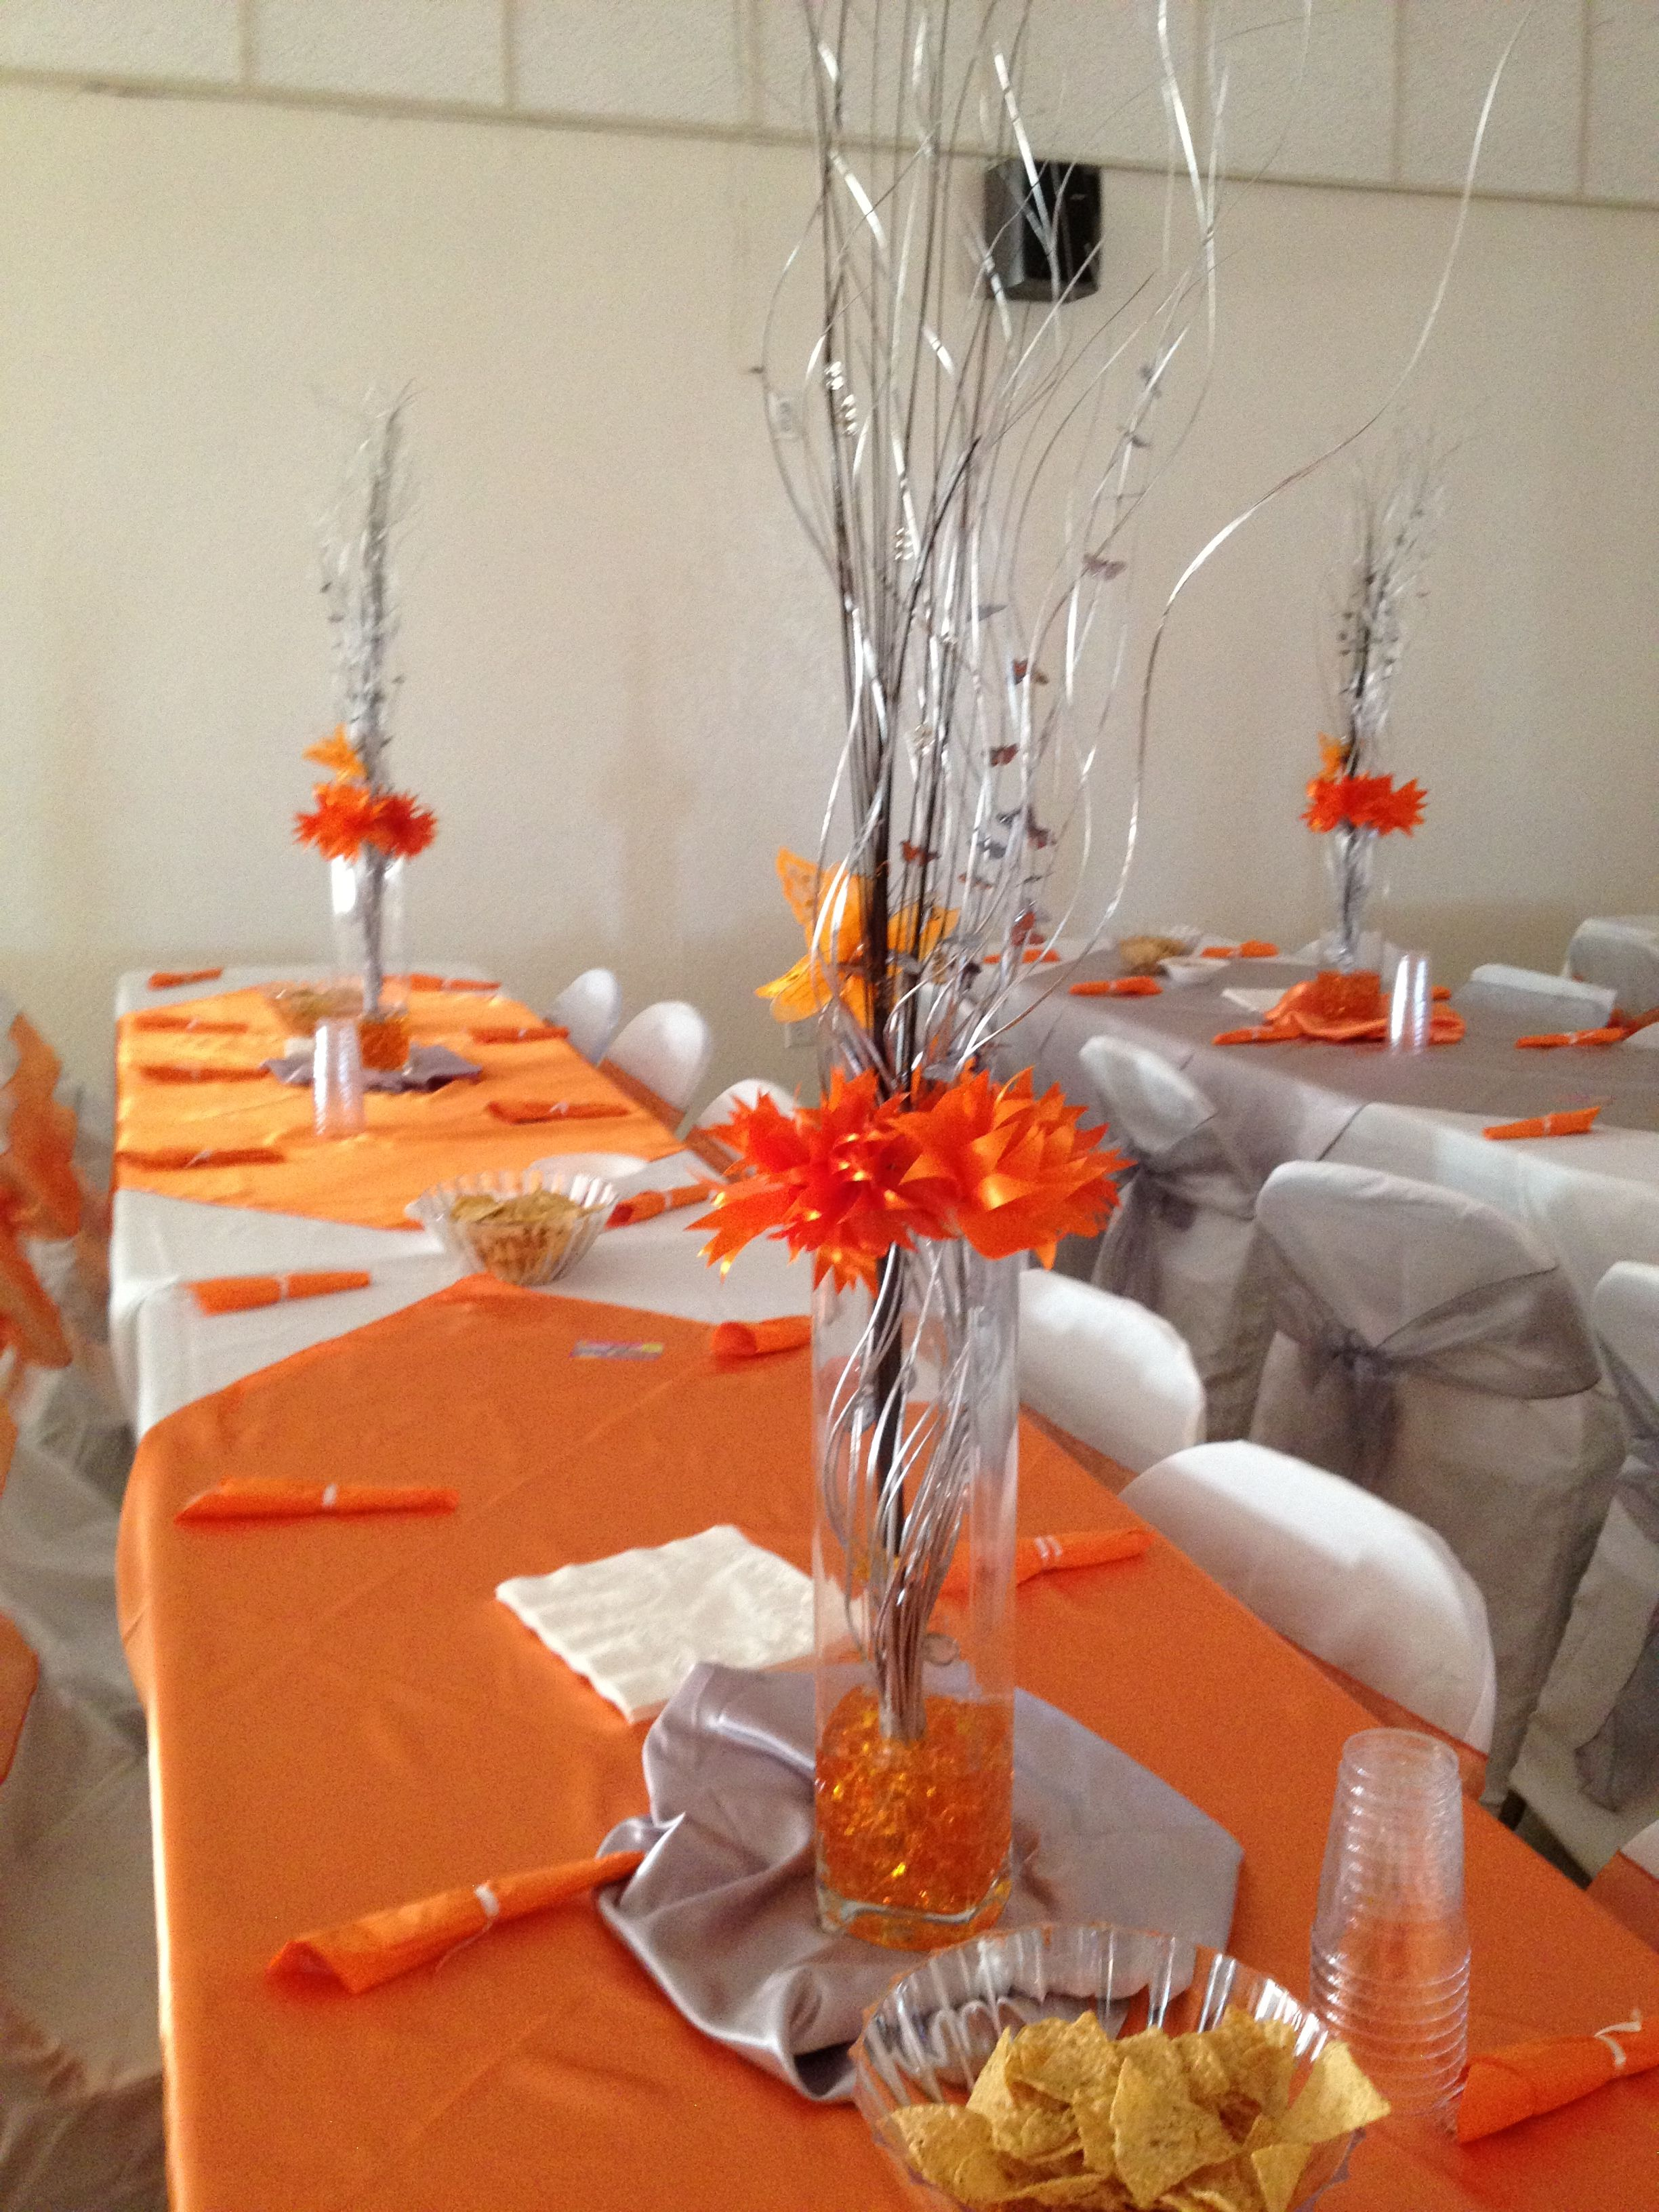 Niece 39 s sweet 16 decorations orange silver theme for 16th birthday decoration